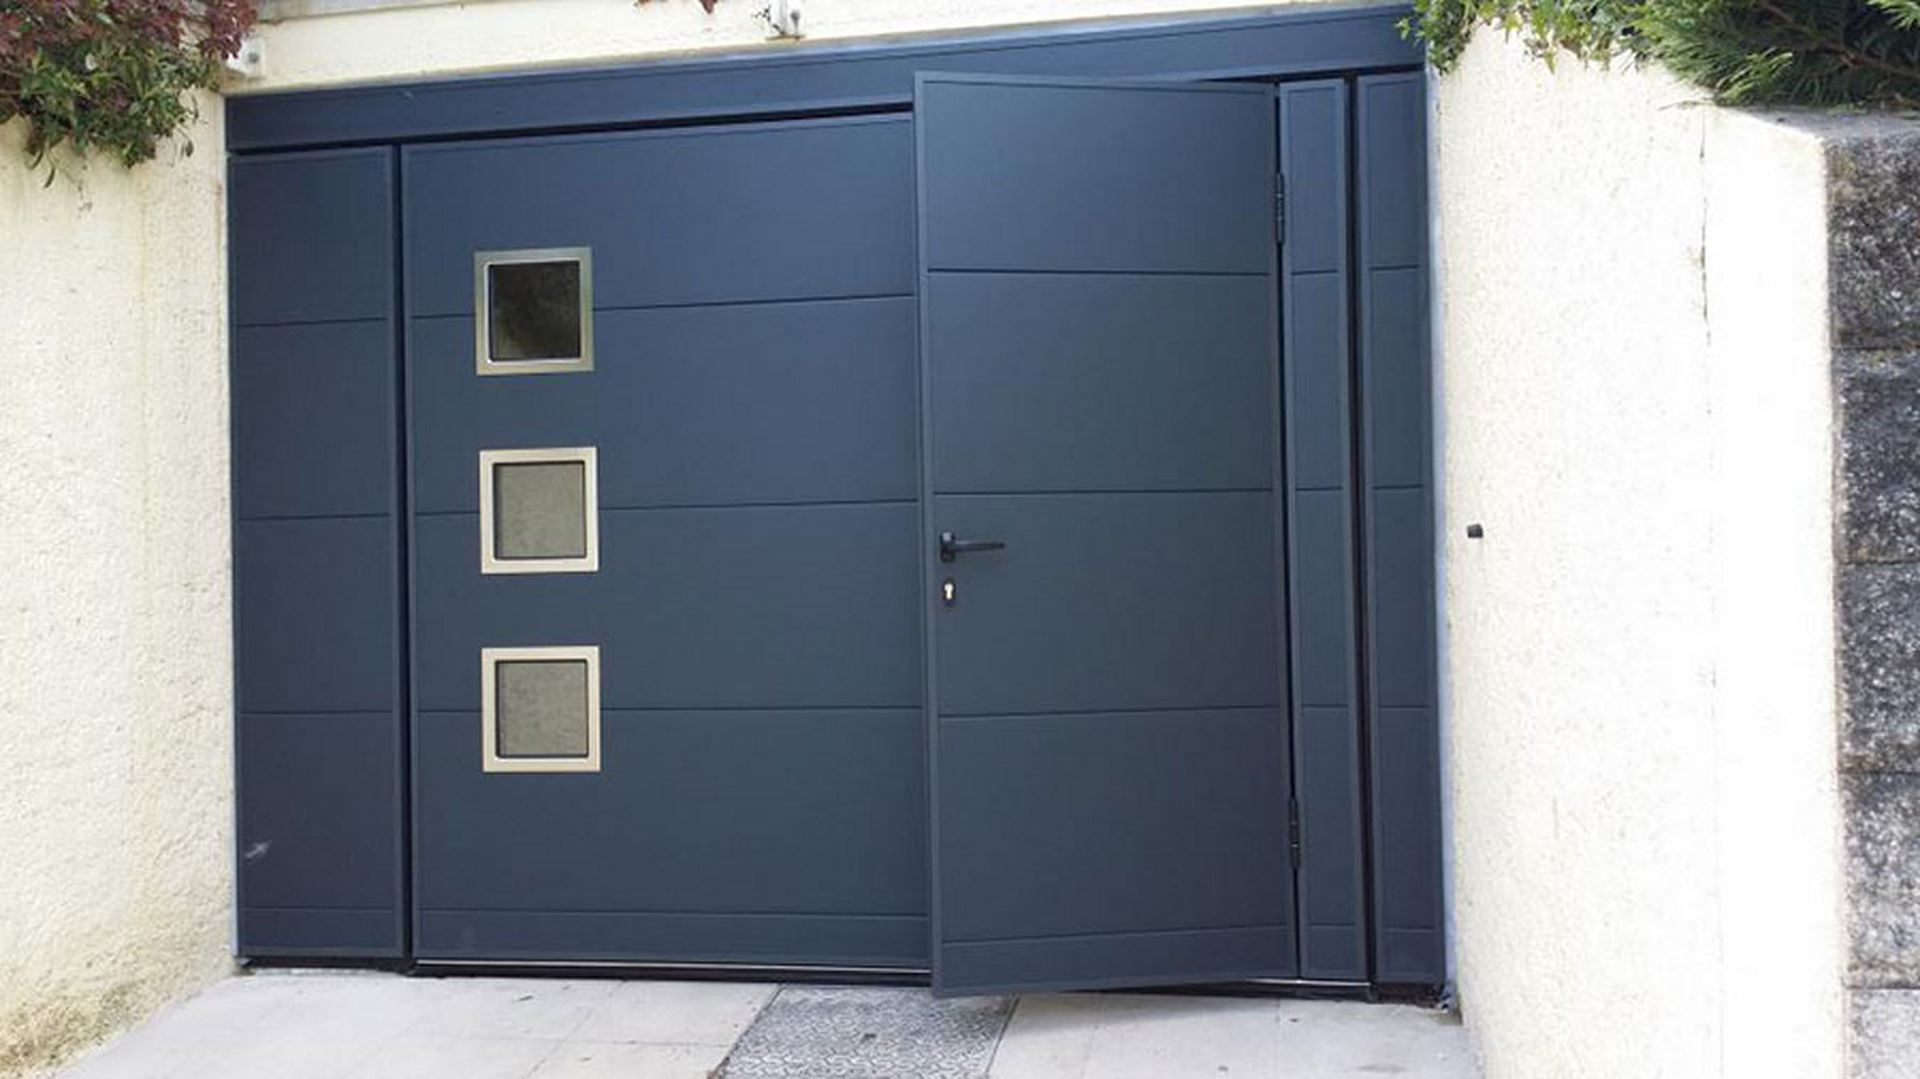 Combien co te une installation de porte de garage abc for Installer chatiere porte garage